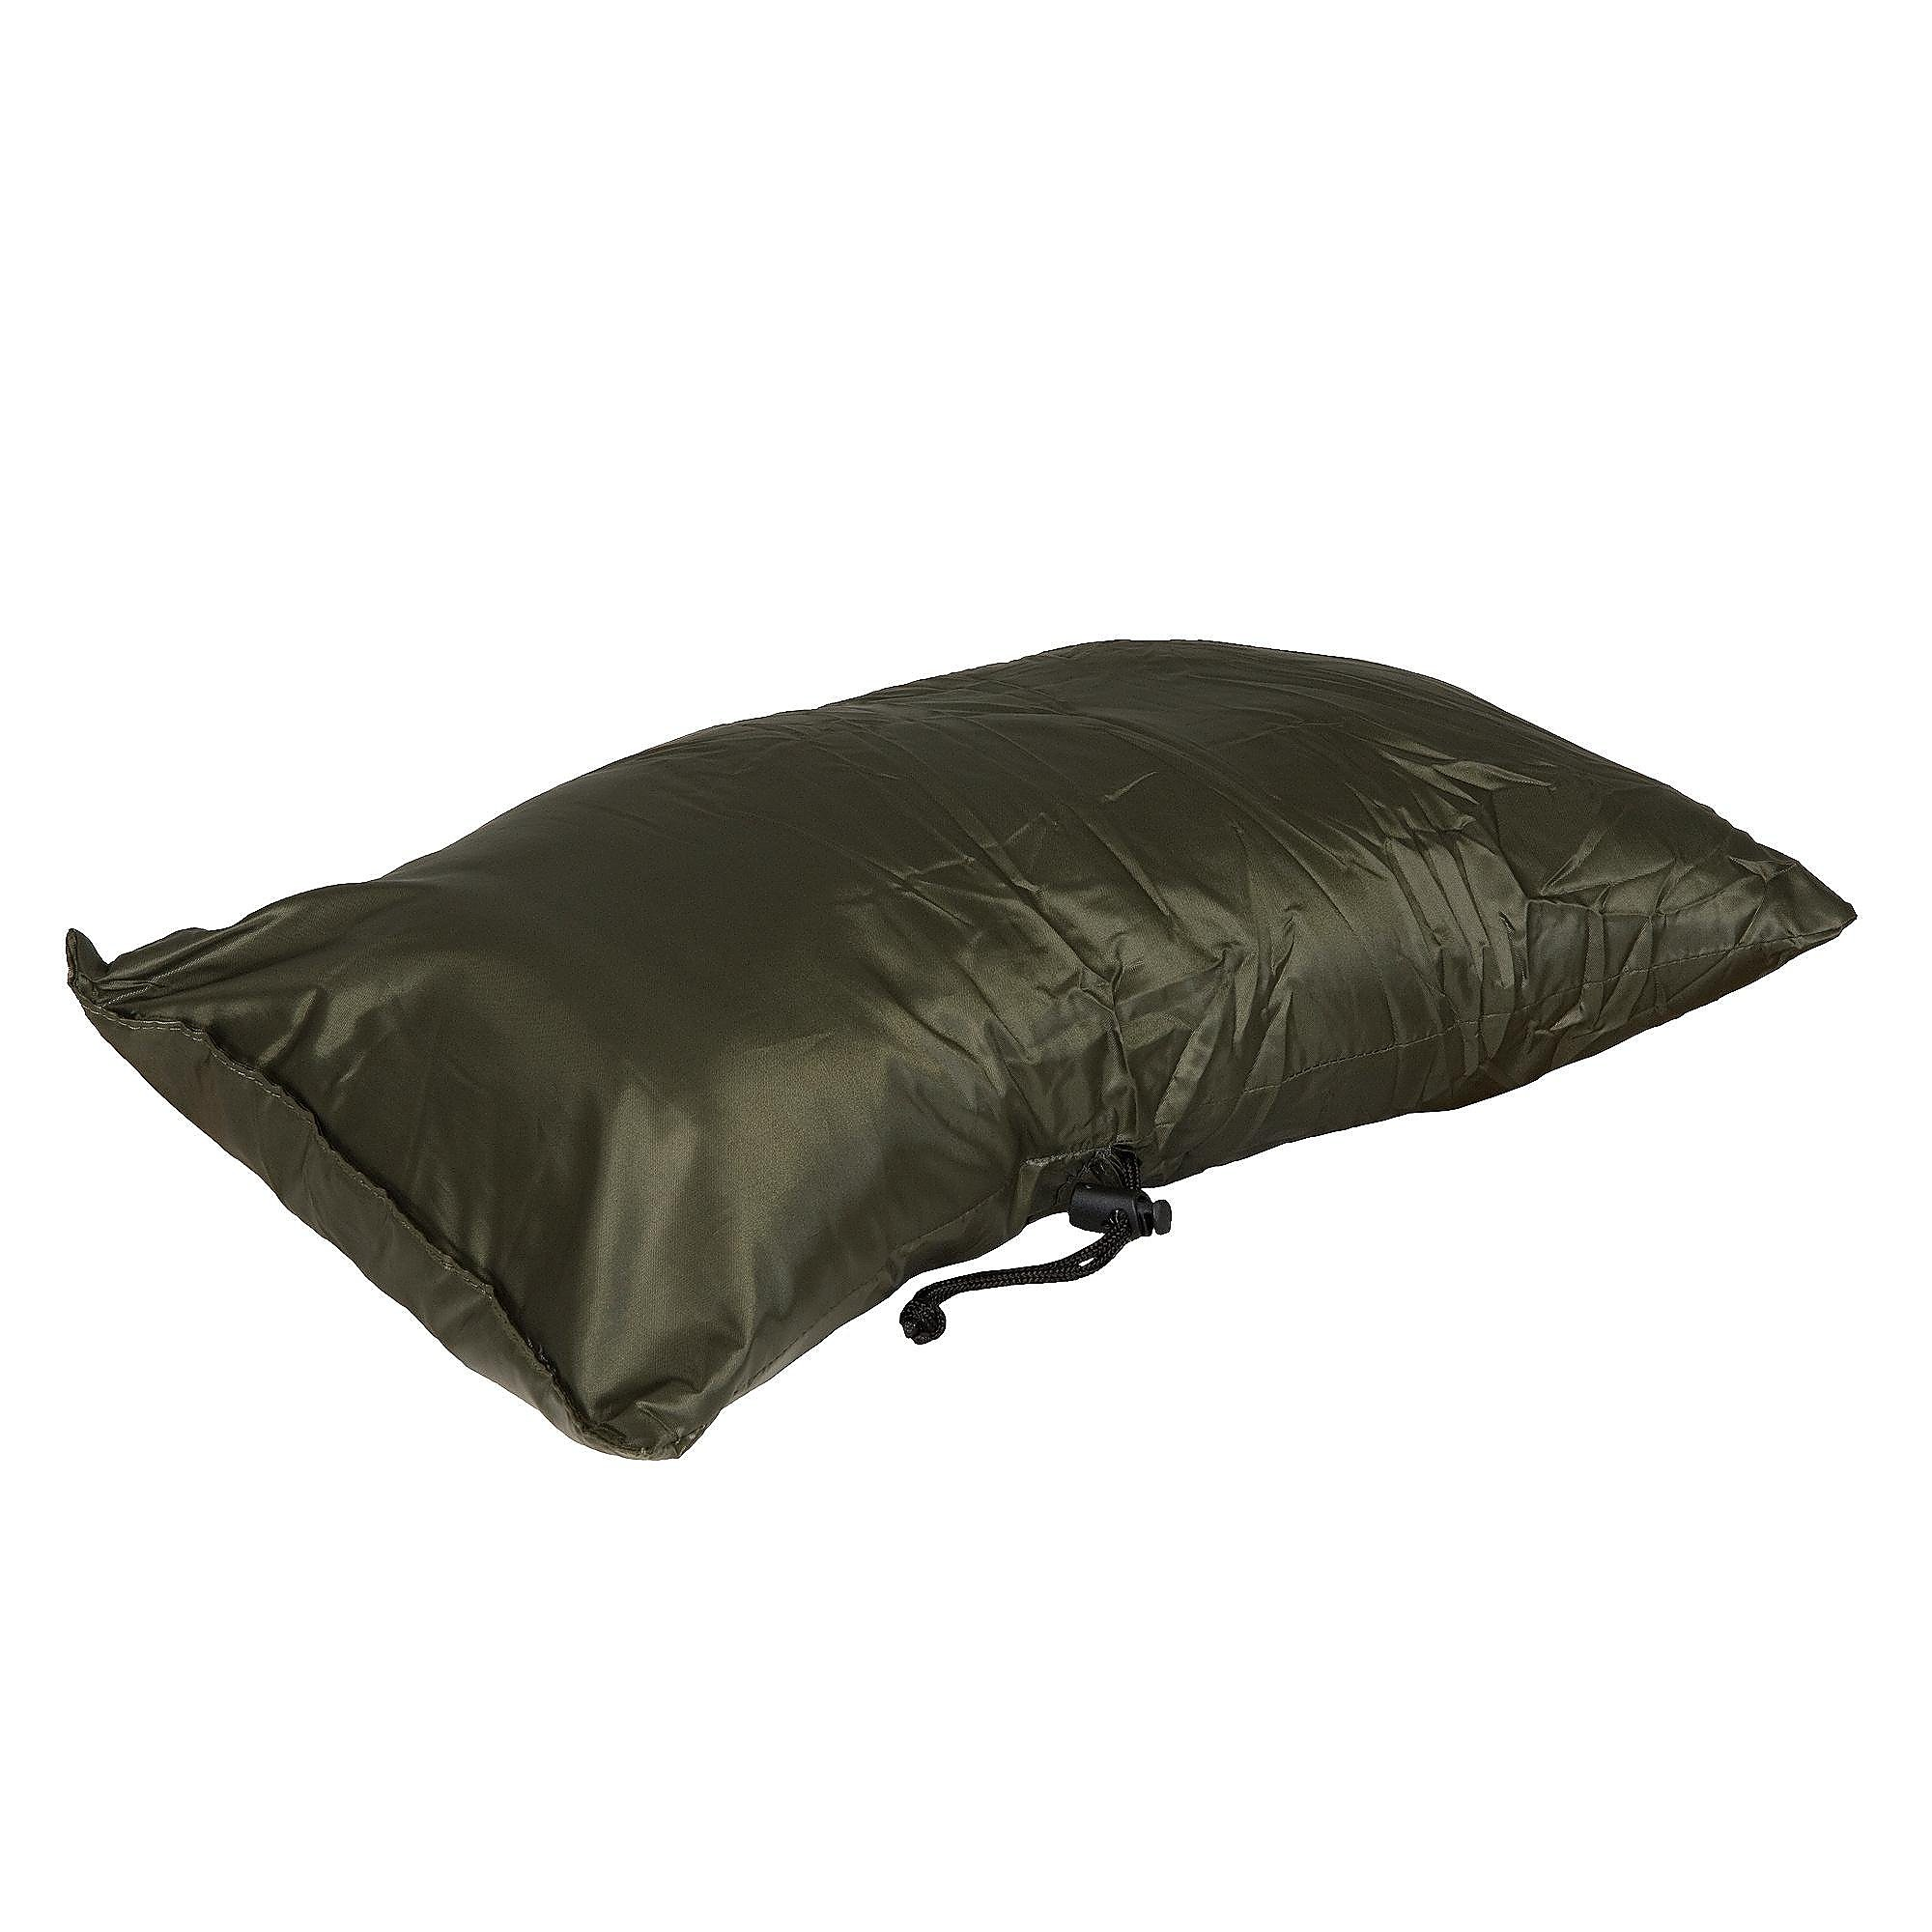 EUROHIKE Pack-a-Pillow